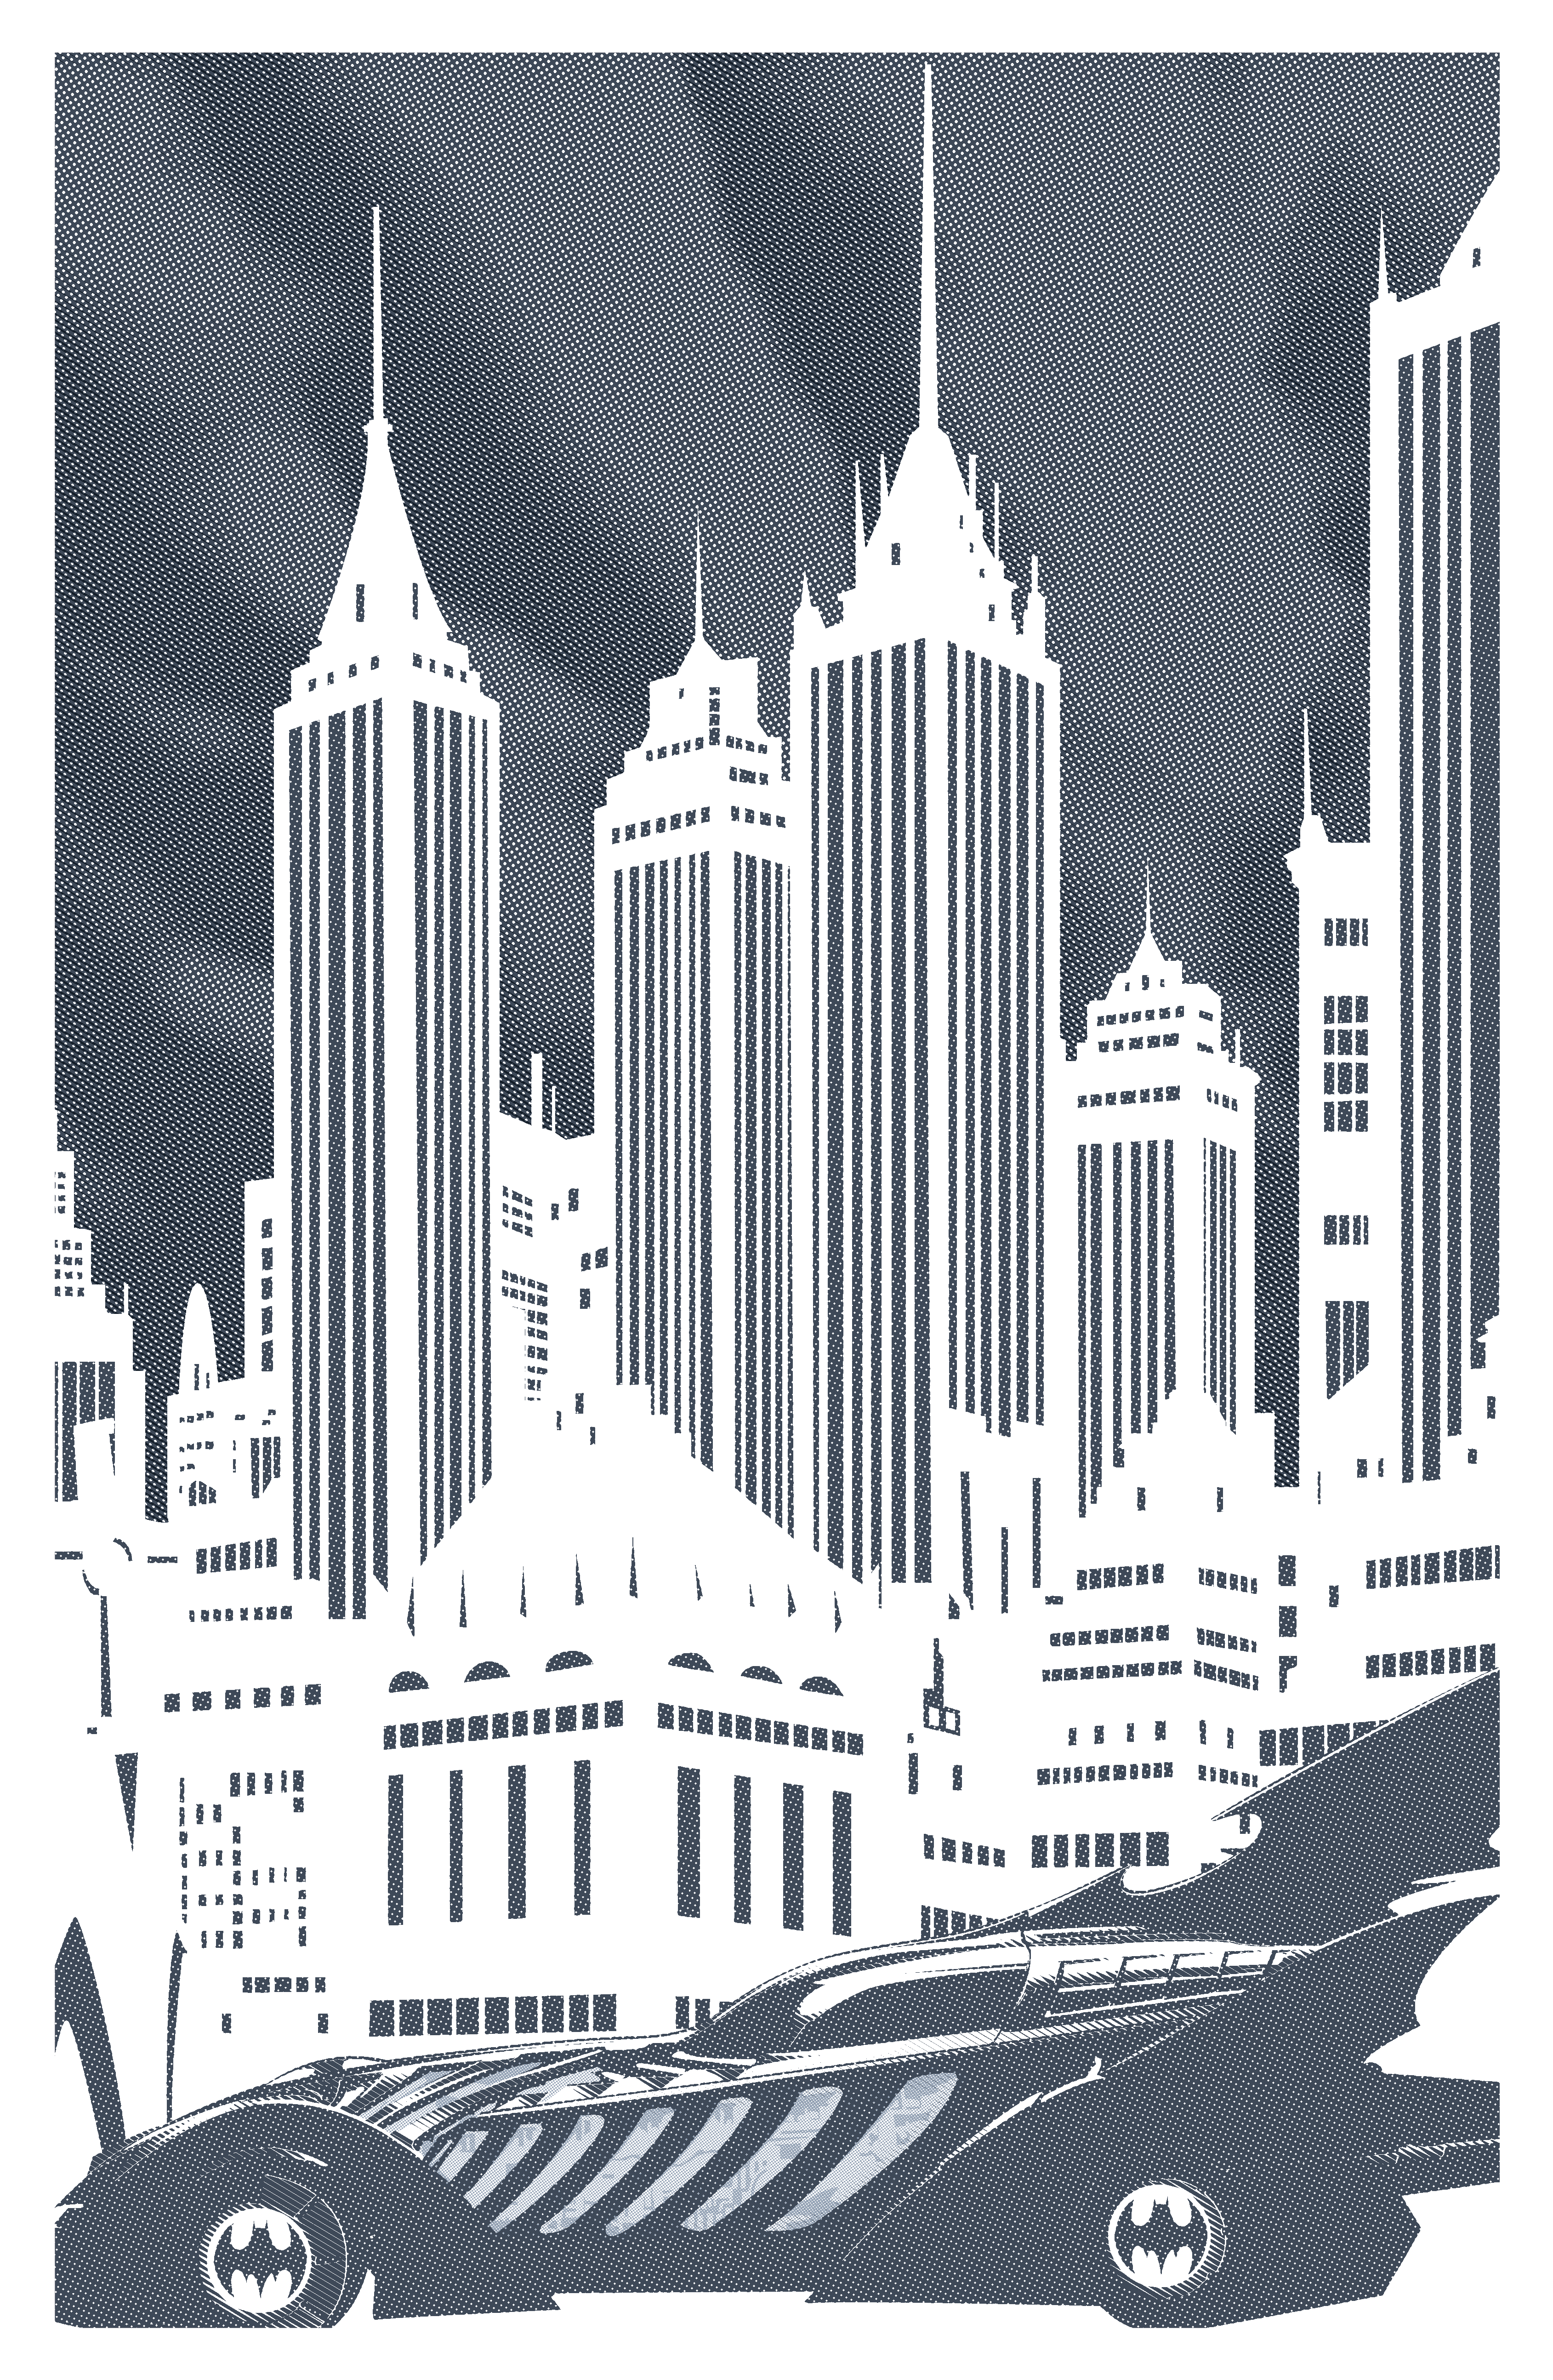 Comic book cityscape clipart vector freeuse download Pin by Endora the Witch on batman | Pinterest | Batmobile and Batman vector freeuse download